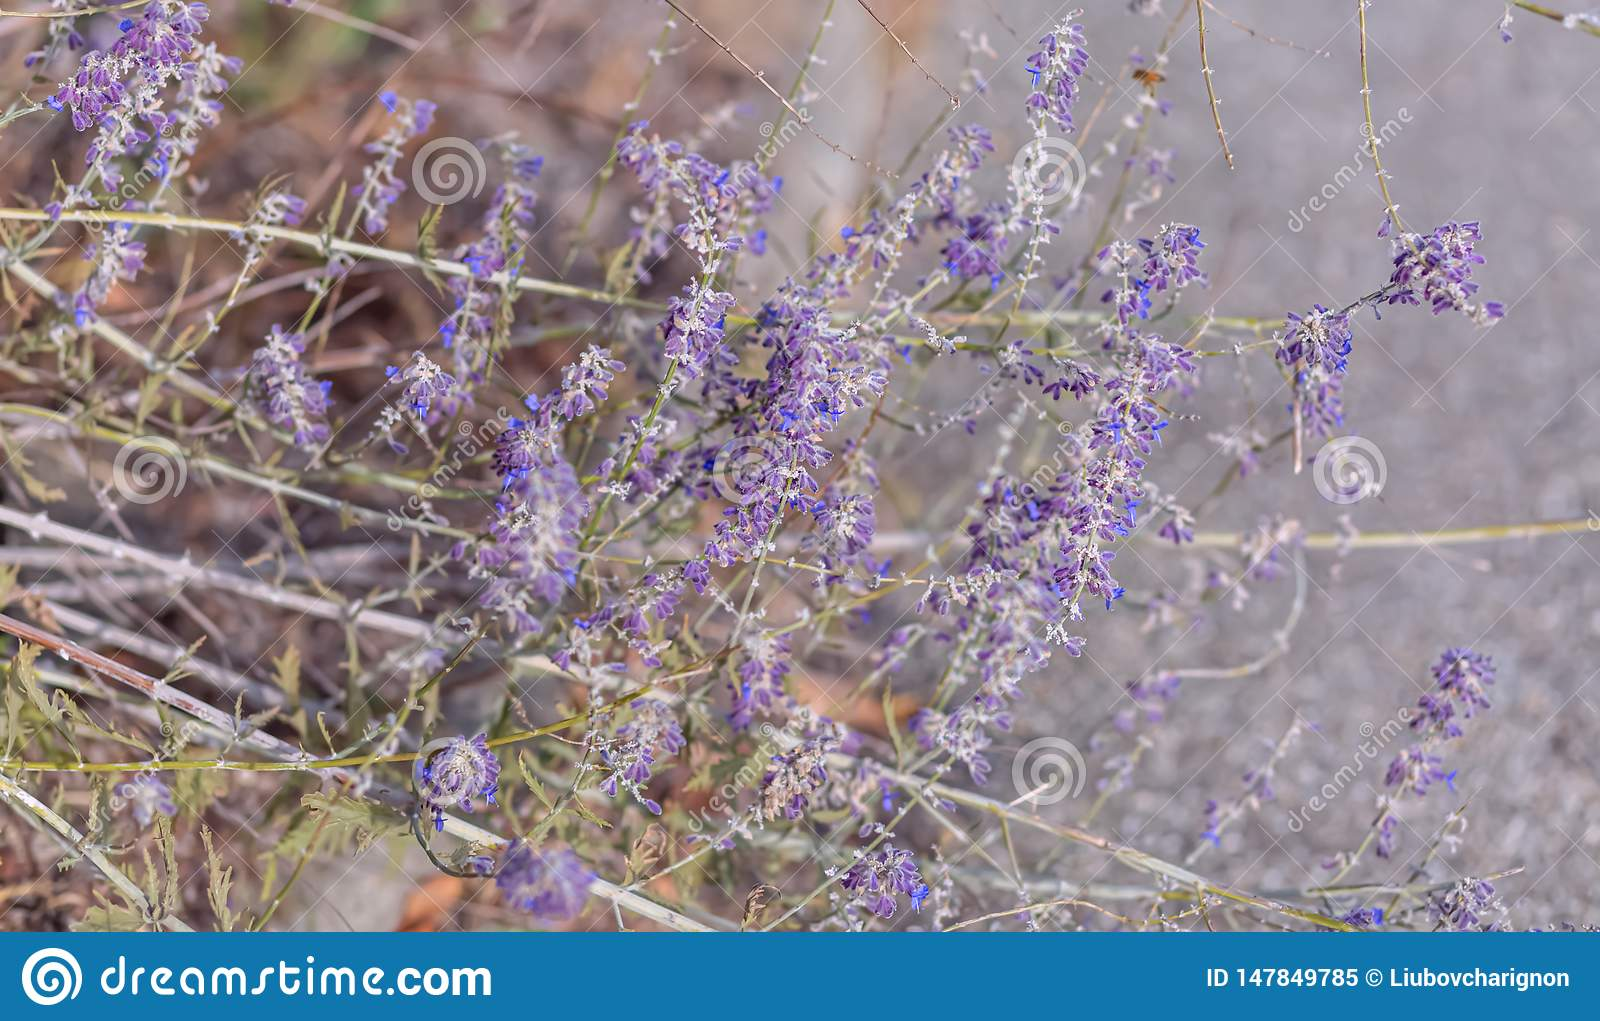 Lavender. Blooming purple lavender flowers and dry grass in the meadows or fields. Art photography.